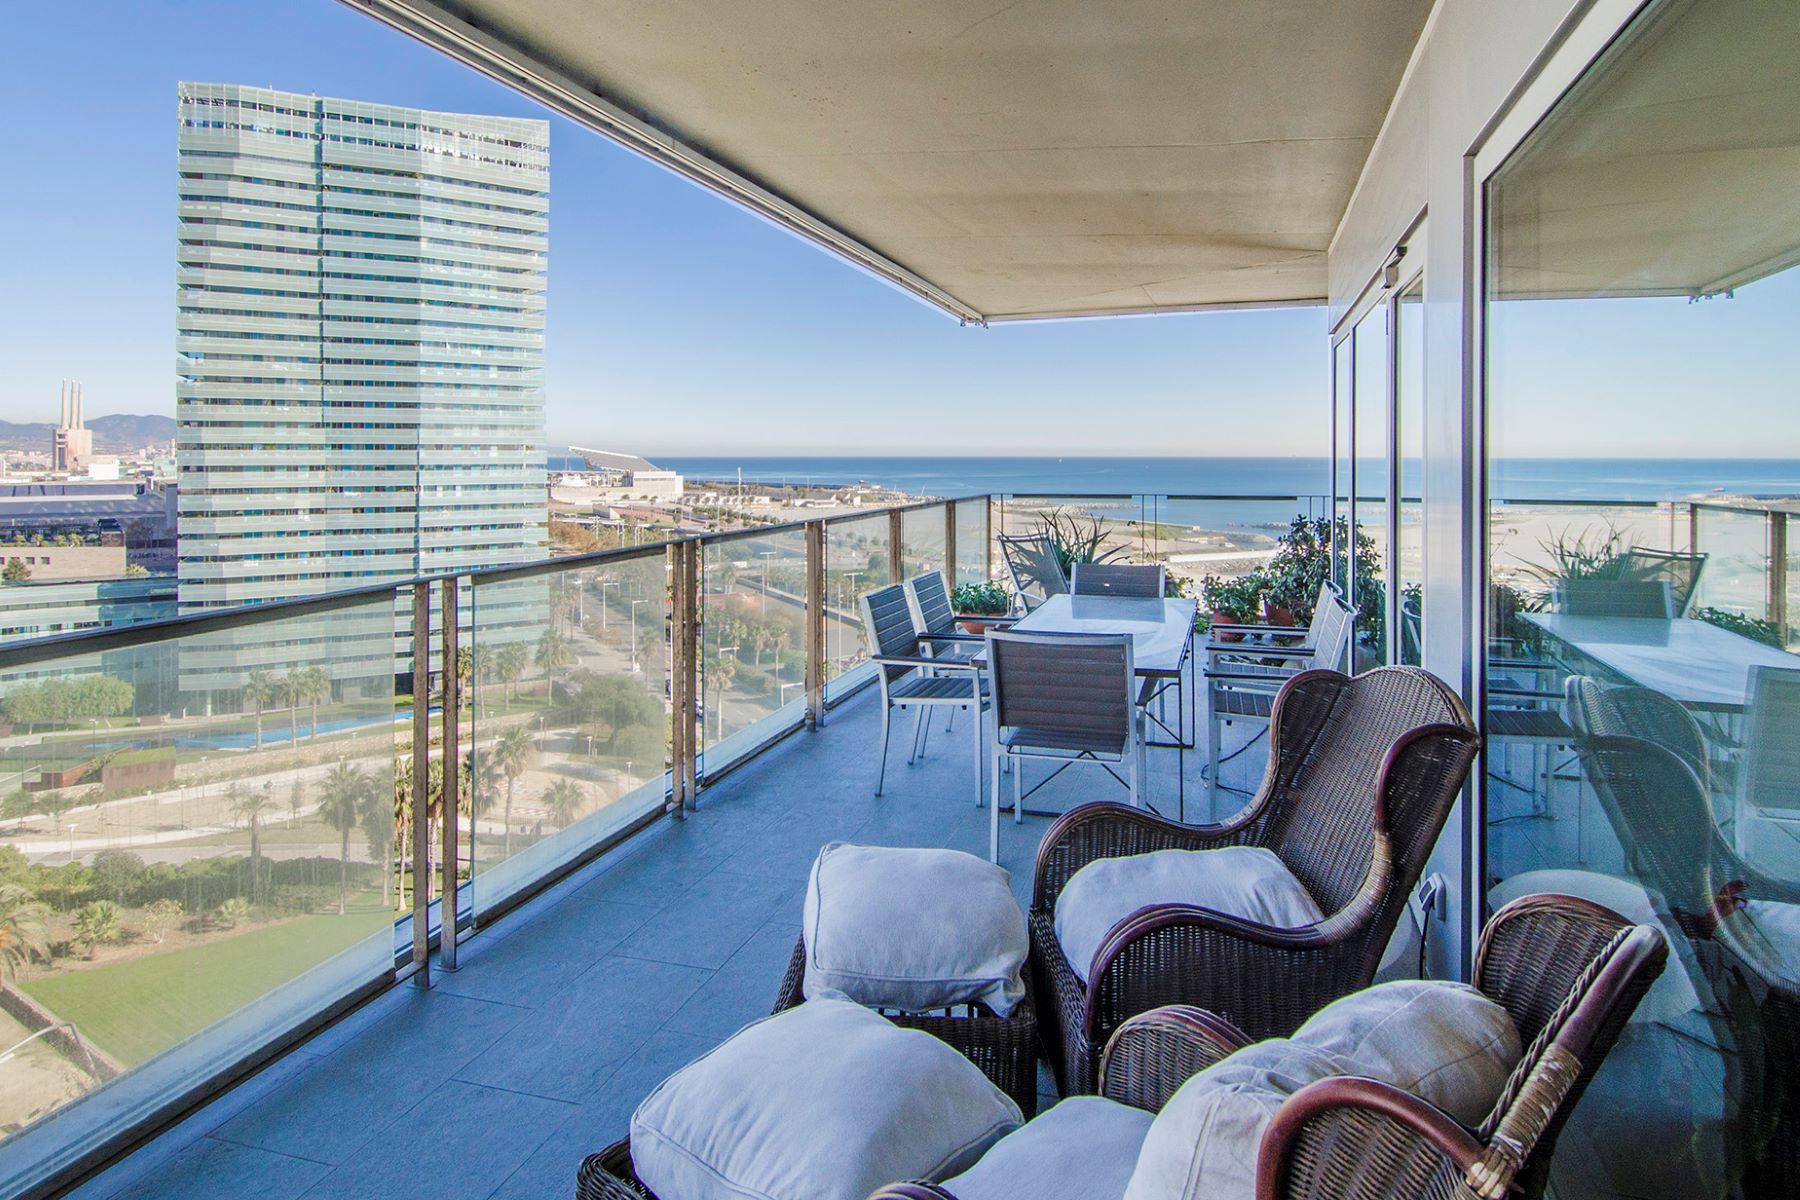 Appartement pour l Vente à Stunning Seafront Apartment in Diagonal Mar, Barcelona Barcelona City, Barcelona, 08019 Espagne